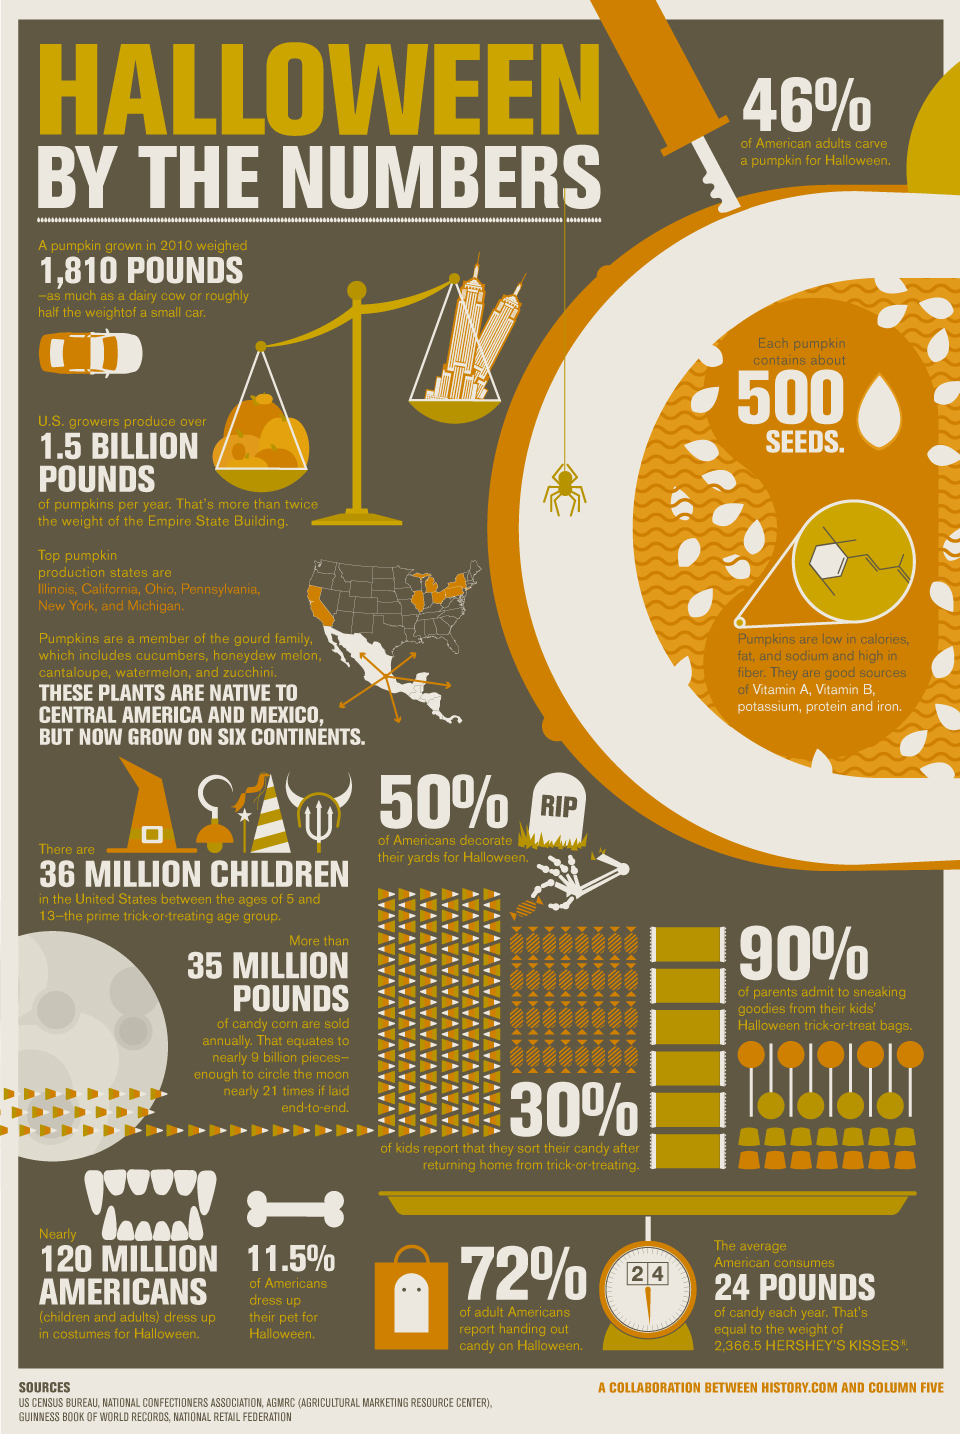 Halloween By the Numbers. (2013). The History Channel website. Retrieved 10:50, October 31, 2013, from http://www.history.com/interactives/halloween-by-the-numbers.